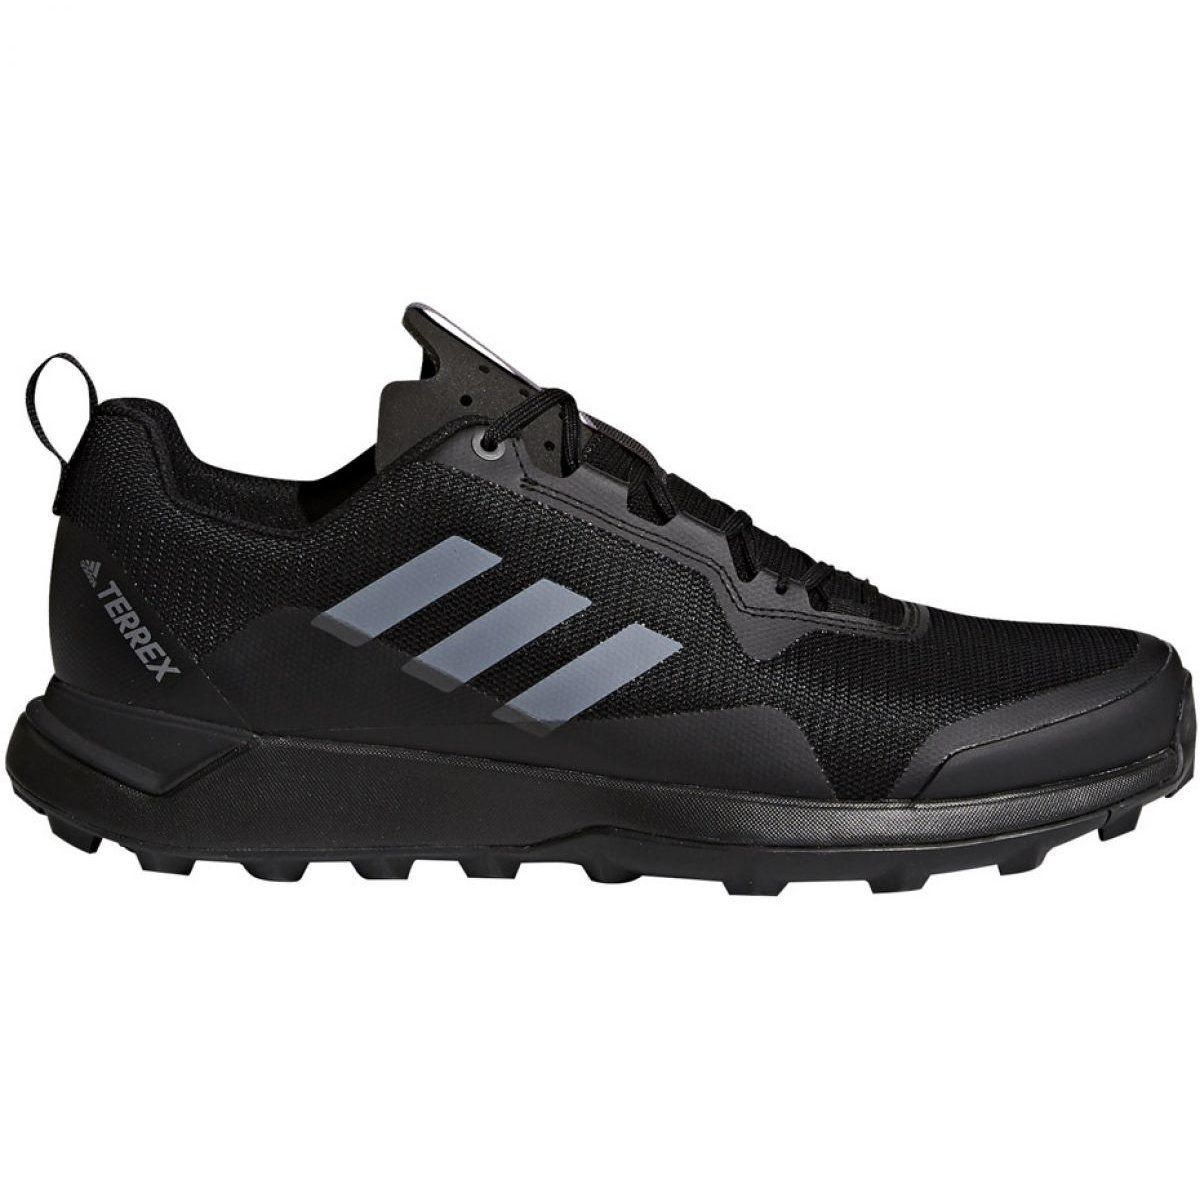 Adidas Terrex Cmtk M S80873 Shoes Black With Images Running Shoes For Men Adidas Men Hiking Shoes